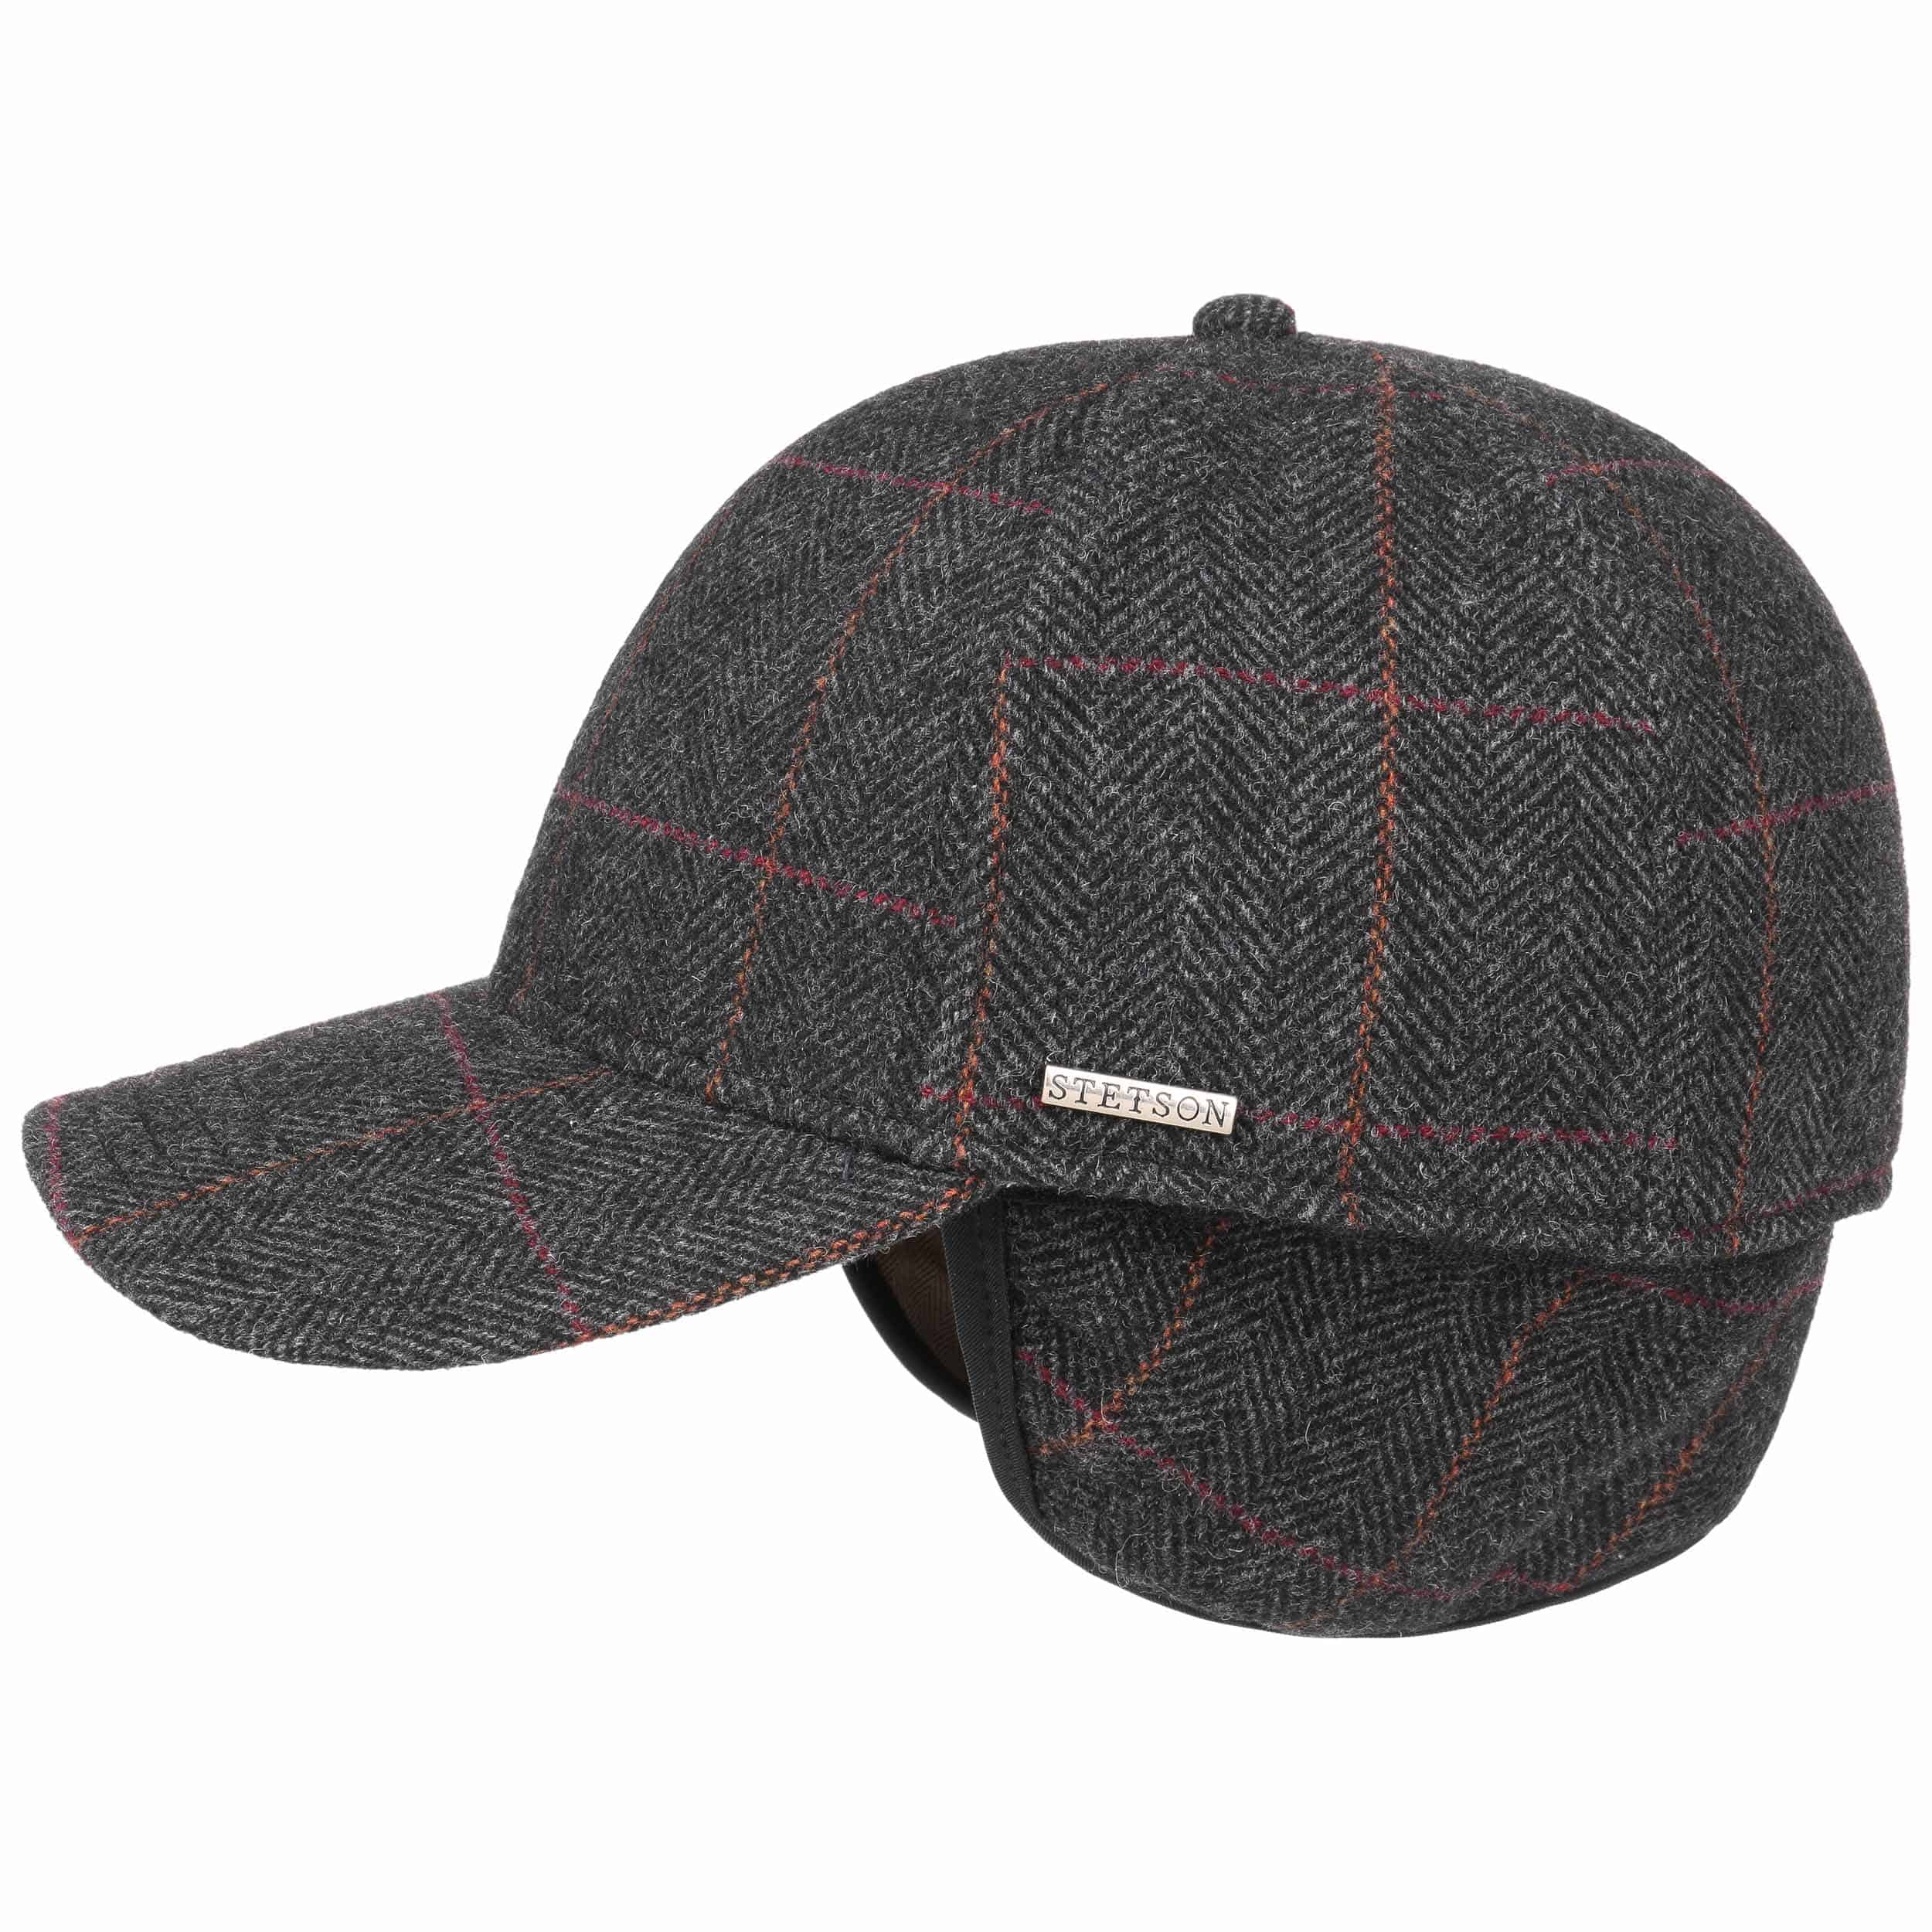 395cf1b49f2e3 Kinty Wool Cap with Ear Flaps. by Stetson